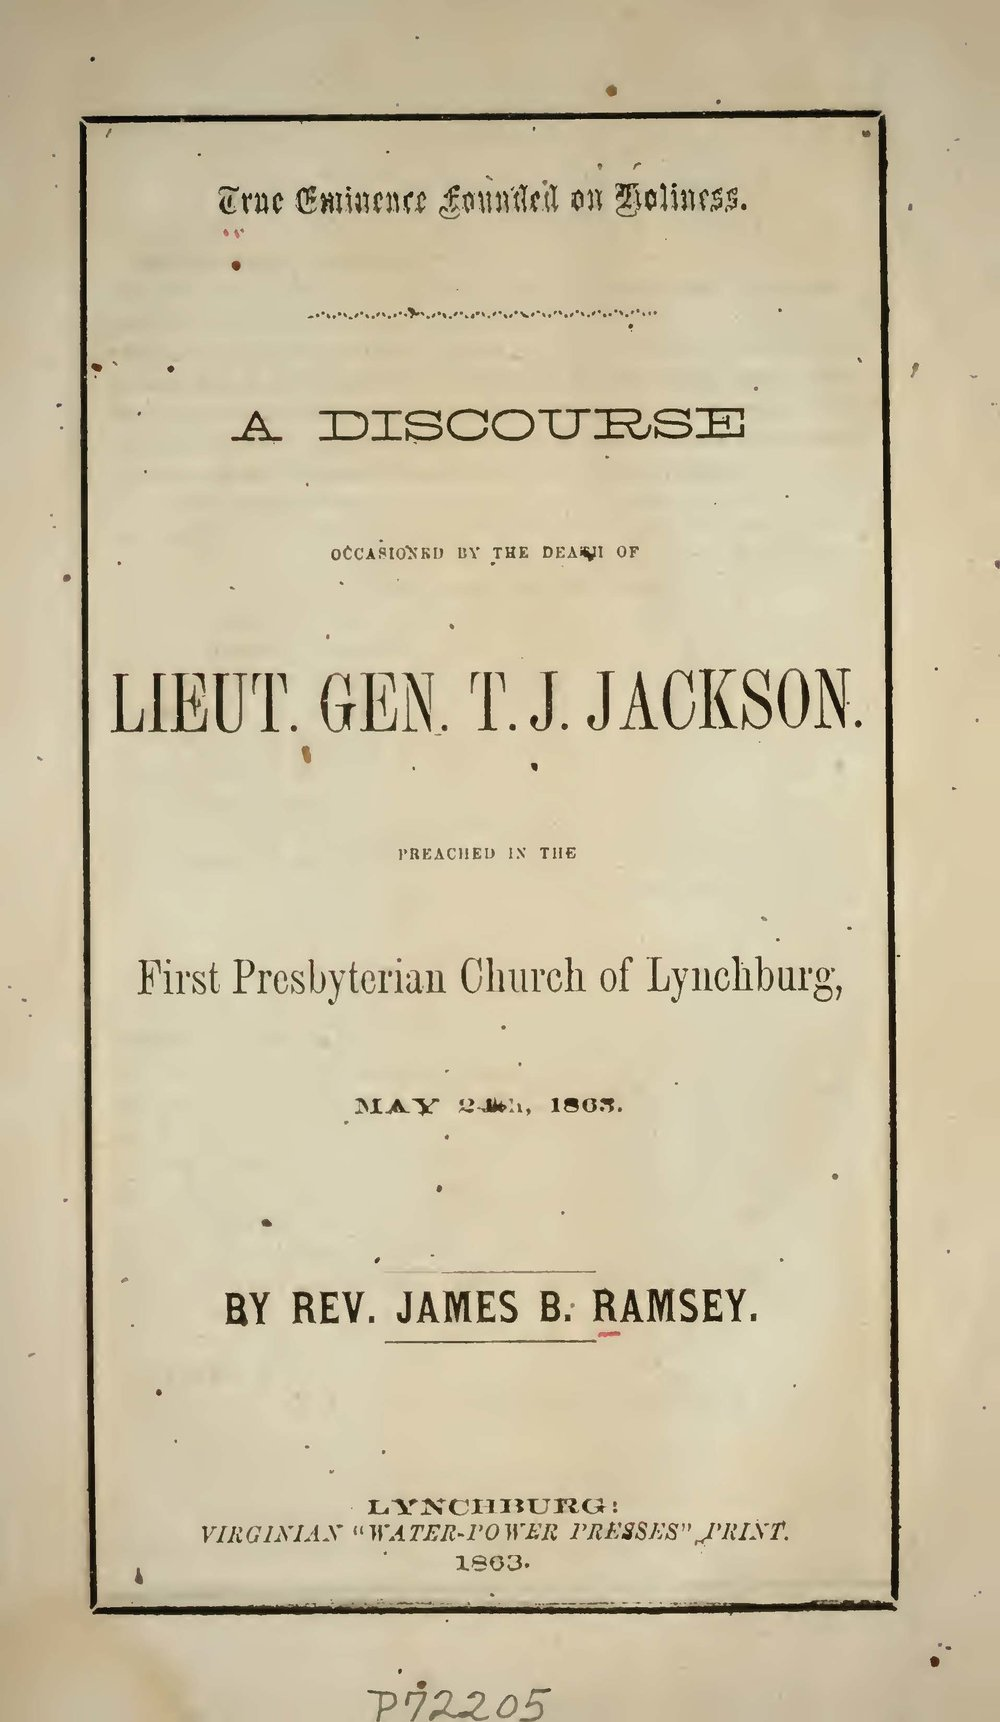 Ramsey, James Beverlin, True Eminence Founded on Holiness Title Page.jpg